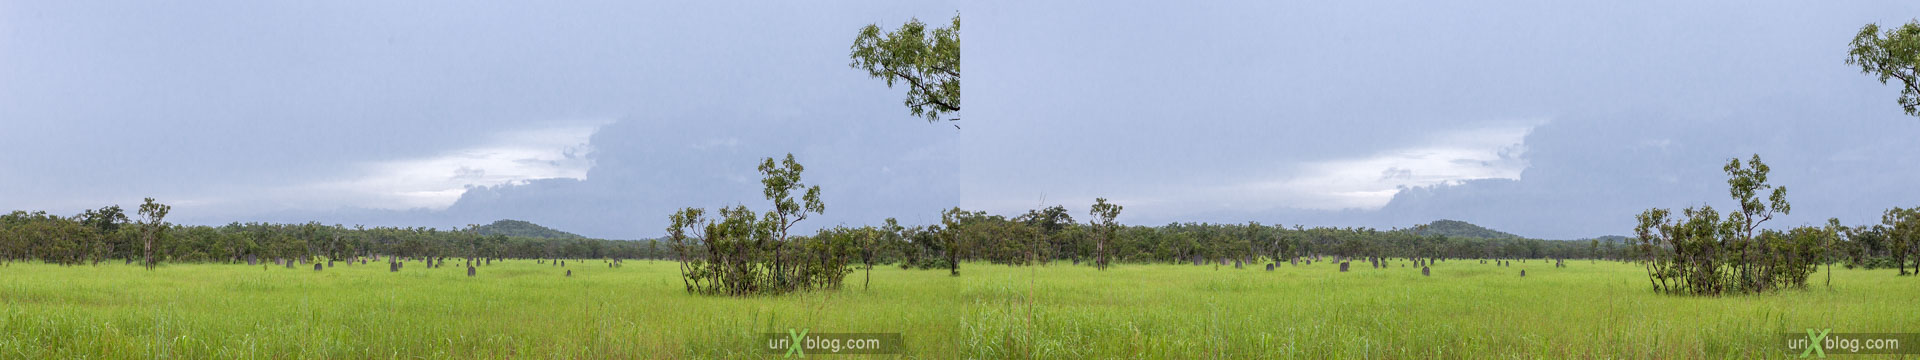 termite mound, Litchfield National Park, Northern Territory, Australia, 3D, stereo pair, cross-eyed, crossview, cross view stereo pair, stereoscopic, 2011